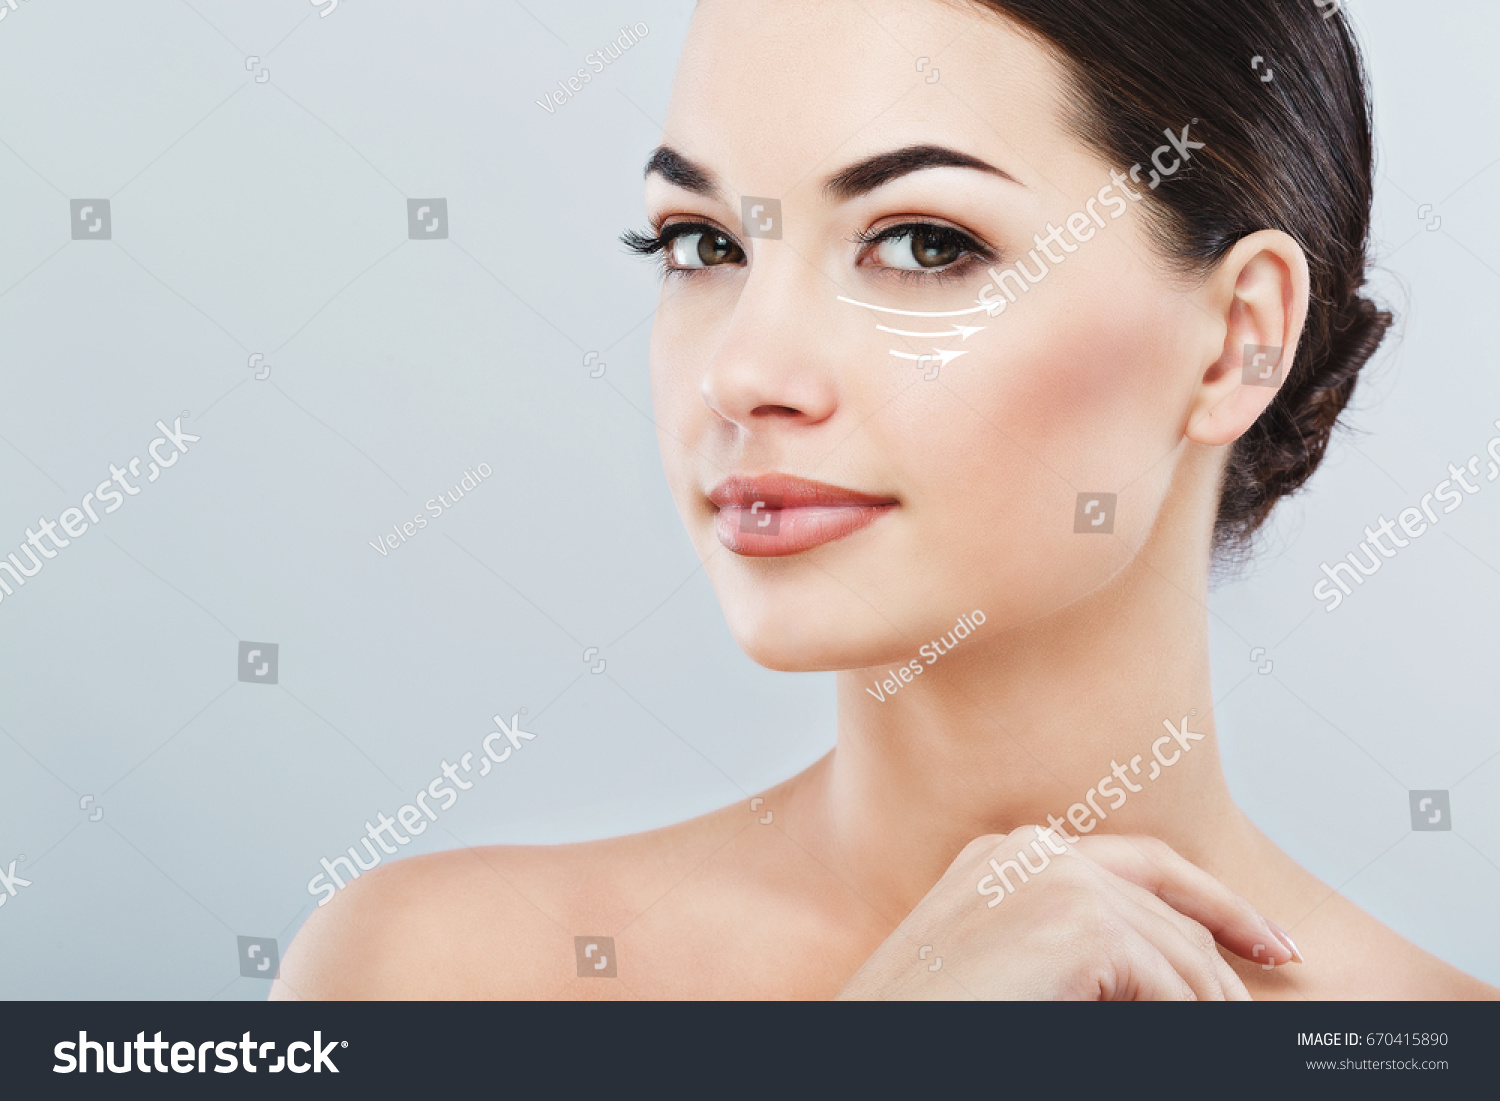 Young female with clean fresh skin, antiaging concept. Attractive girl with naked shoulders, looking at camera and smiling, holding hands near face, lifting arrows under eye #670415890